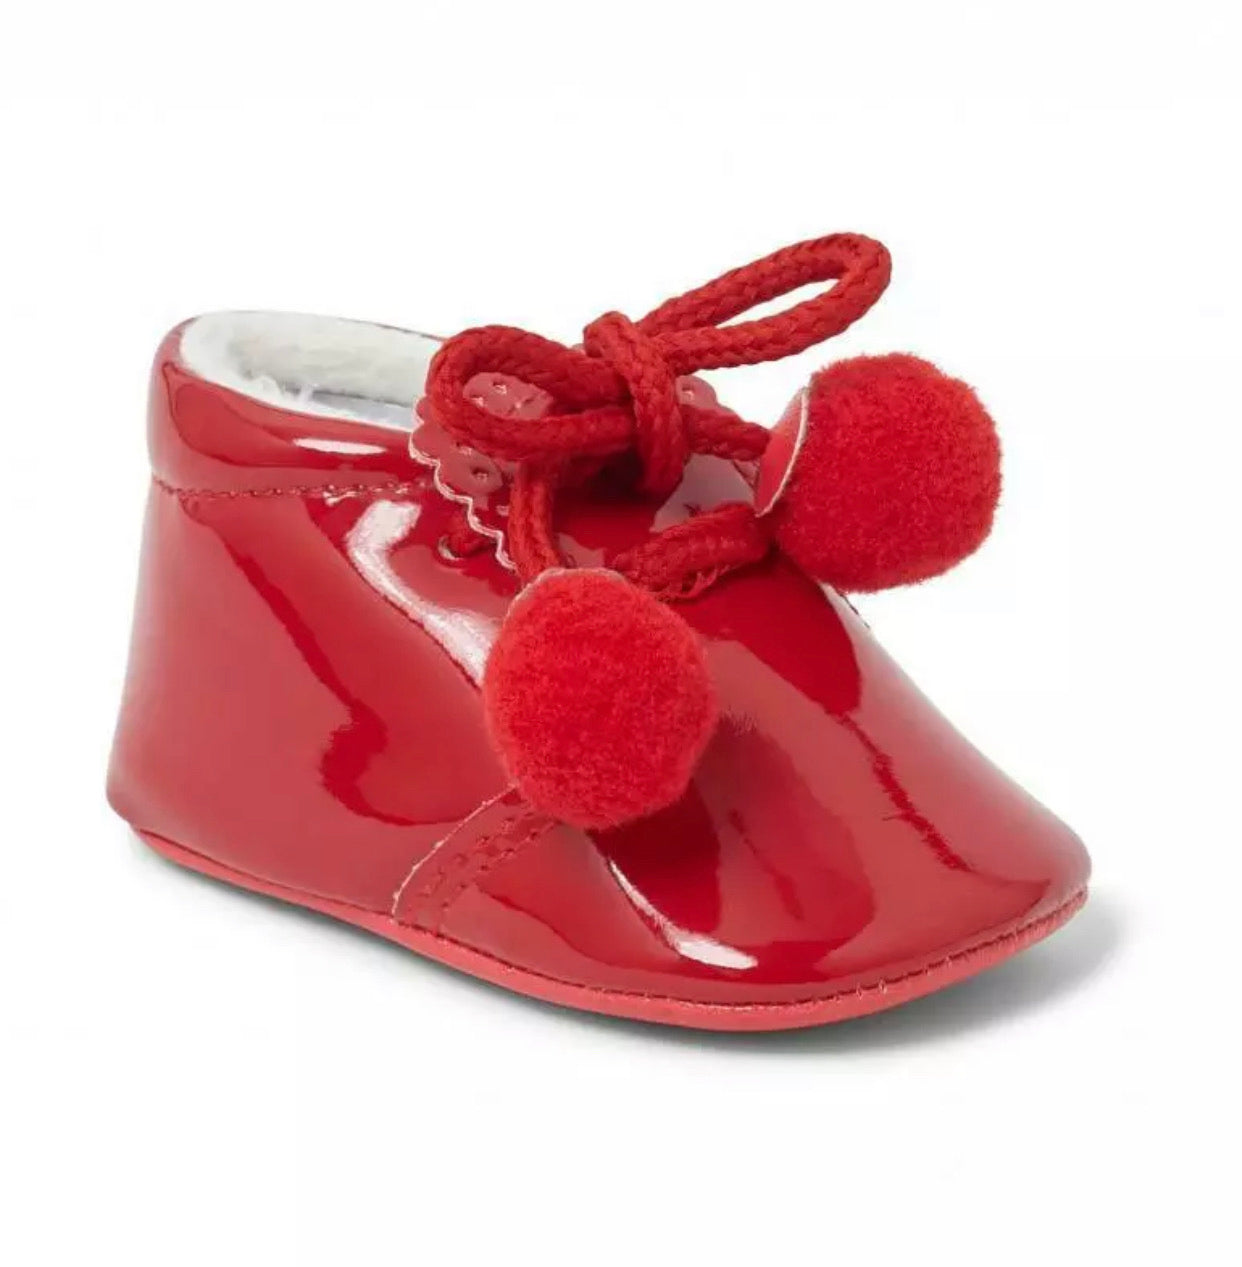 Joe Red Pom Pom Pram Shoe